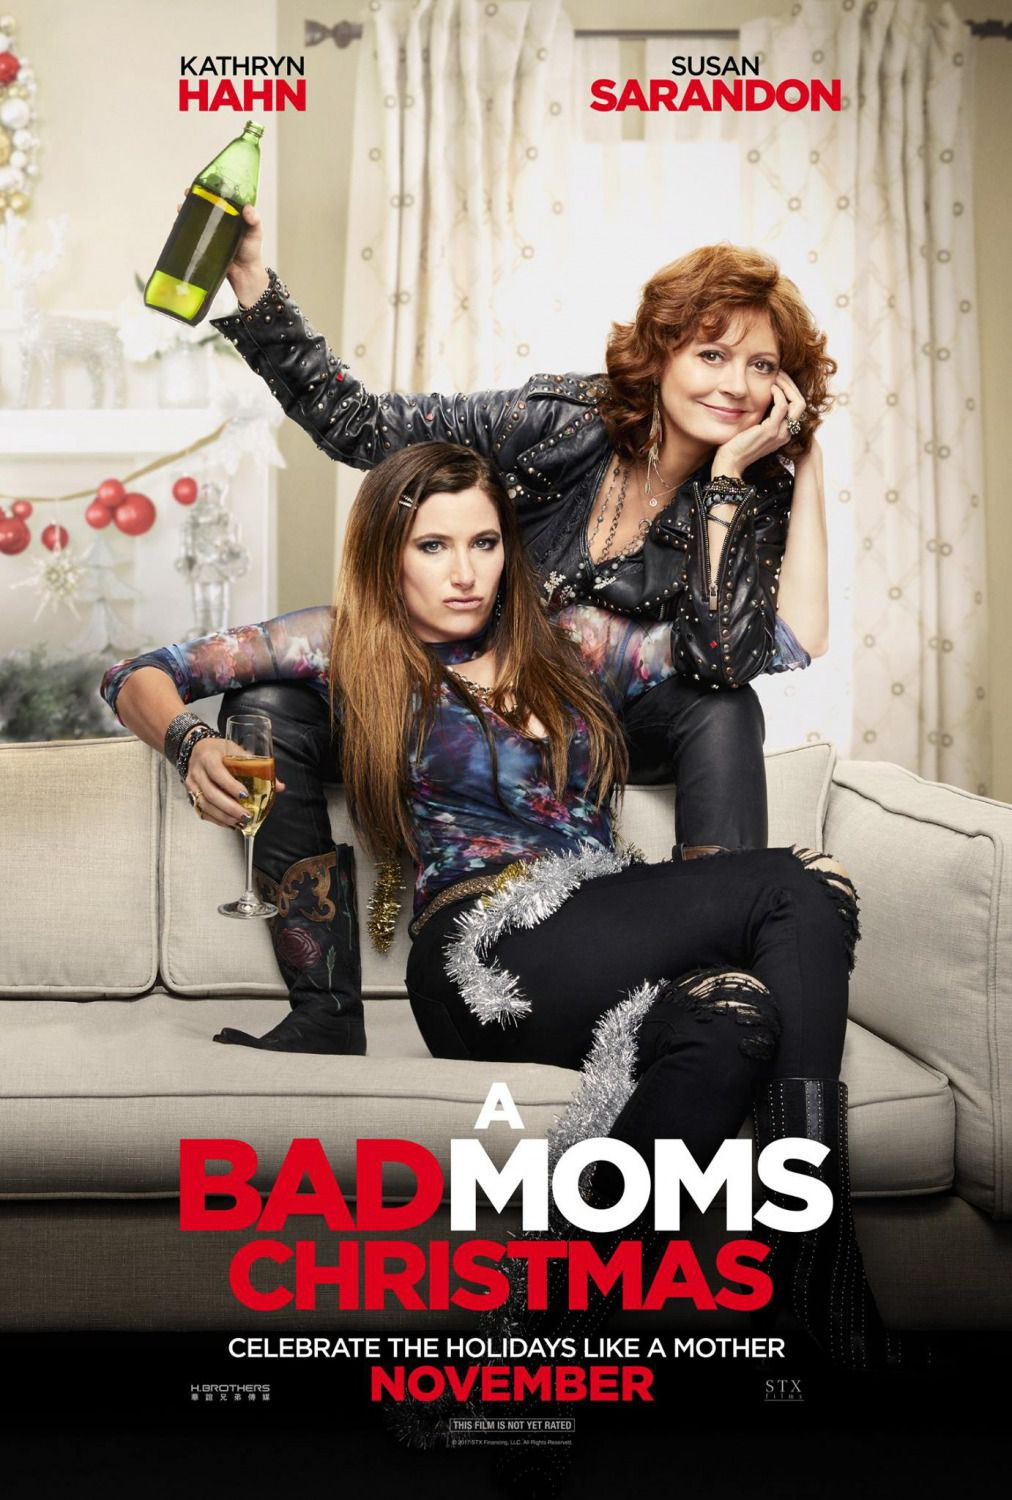 Bad Moms Christmas - Bad Moms 2 – Mamme molto più cattive - film poster - Kathryn Hahn - Susan Sarandon